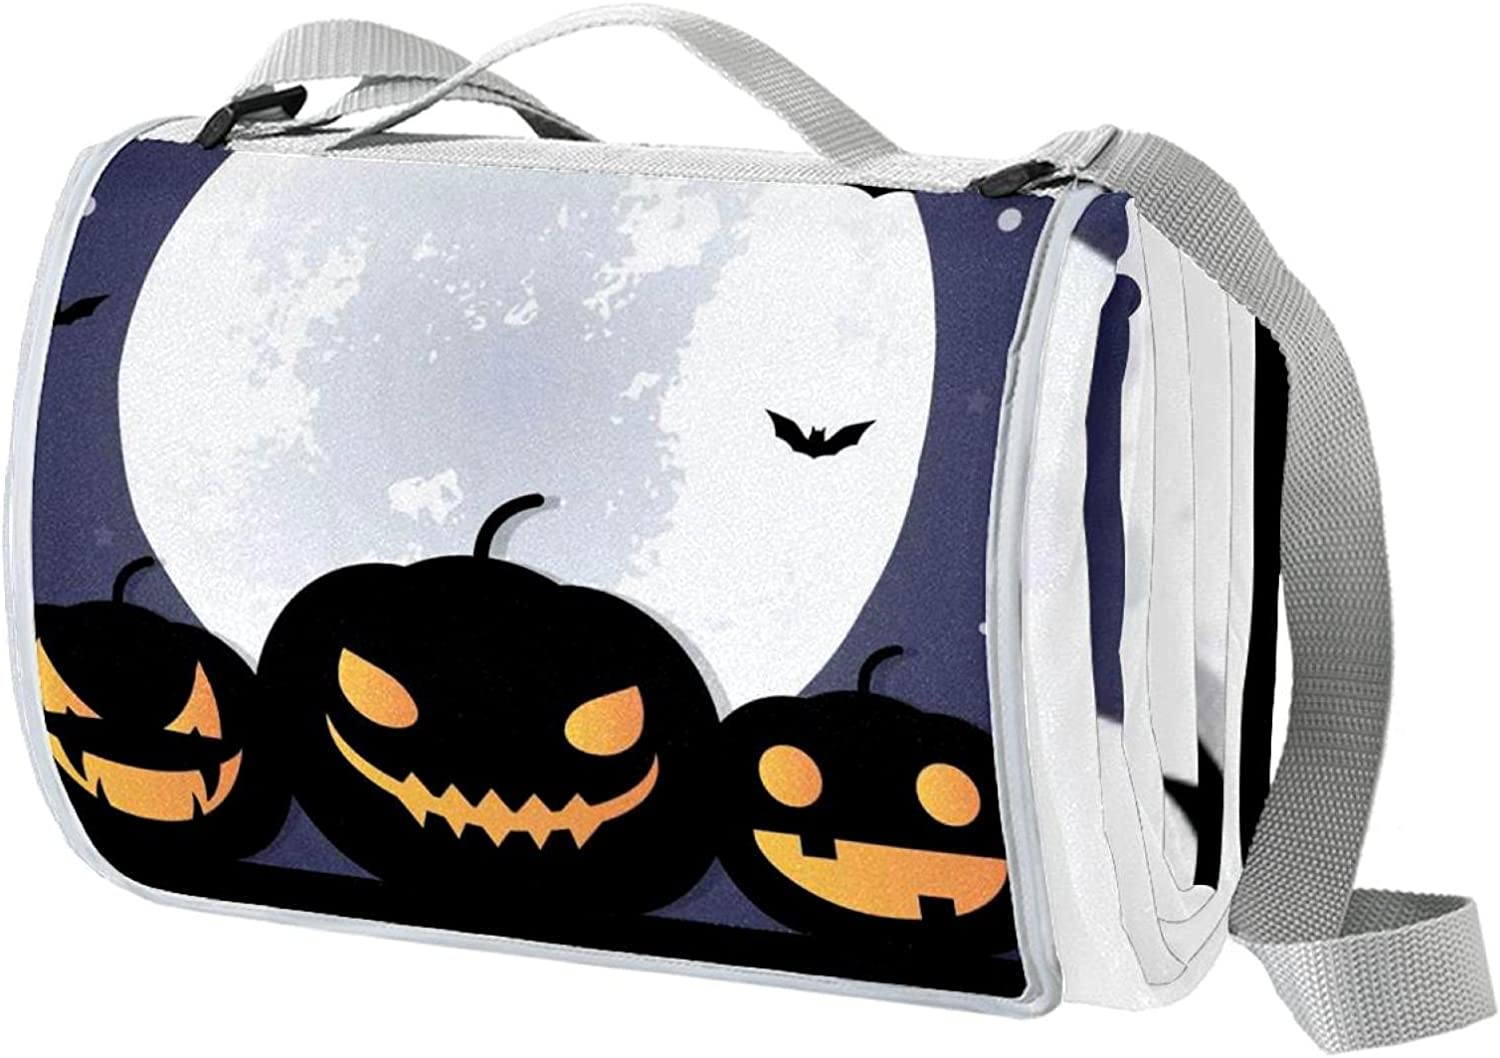 Portable Picnic Outdoor Blanket New Topics on TV Shipping Free for Halloween Water-Resistant